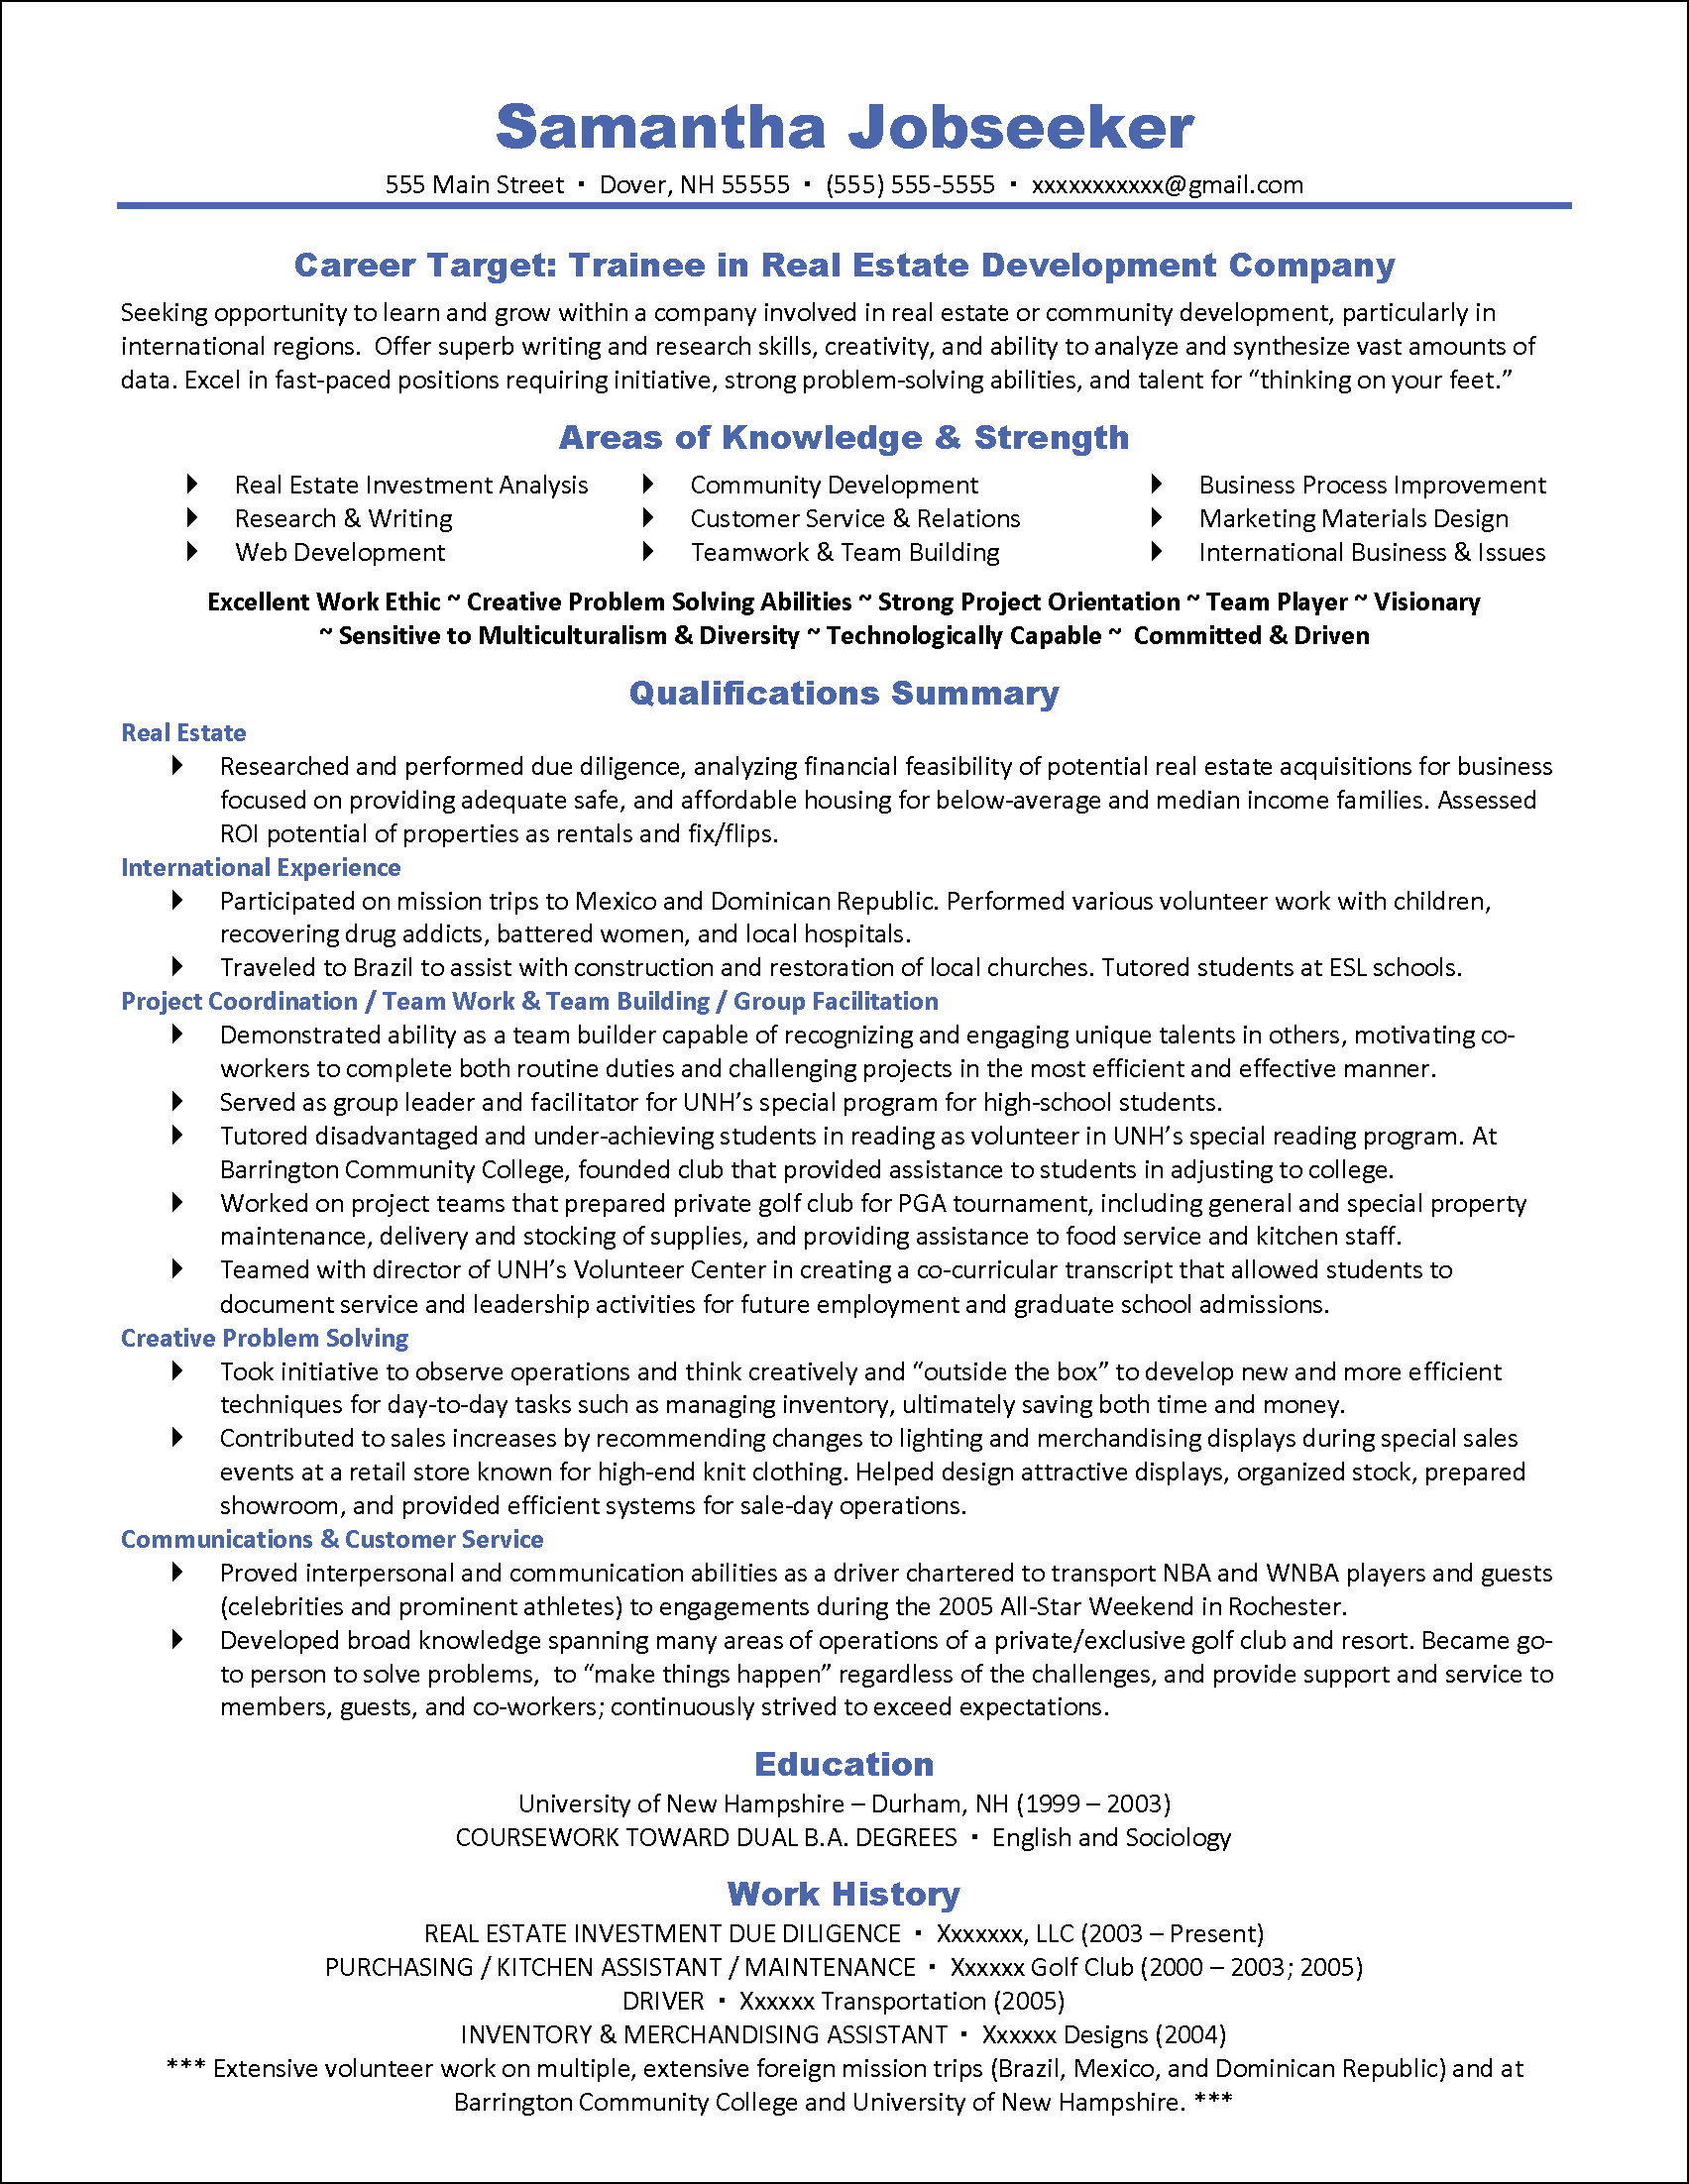 typical resume outline rsum wikipedia resume distinctive documents example targeted resume for real estate